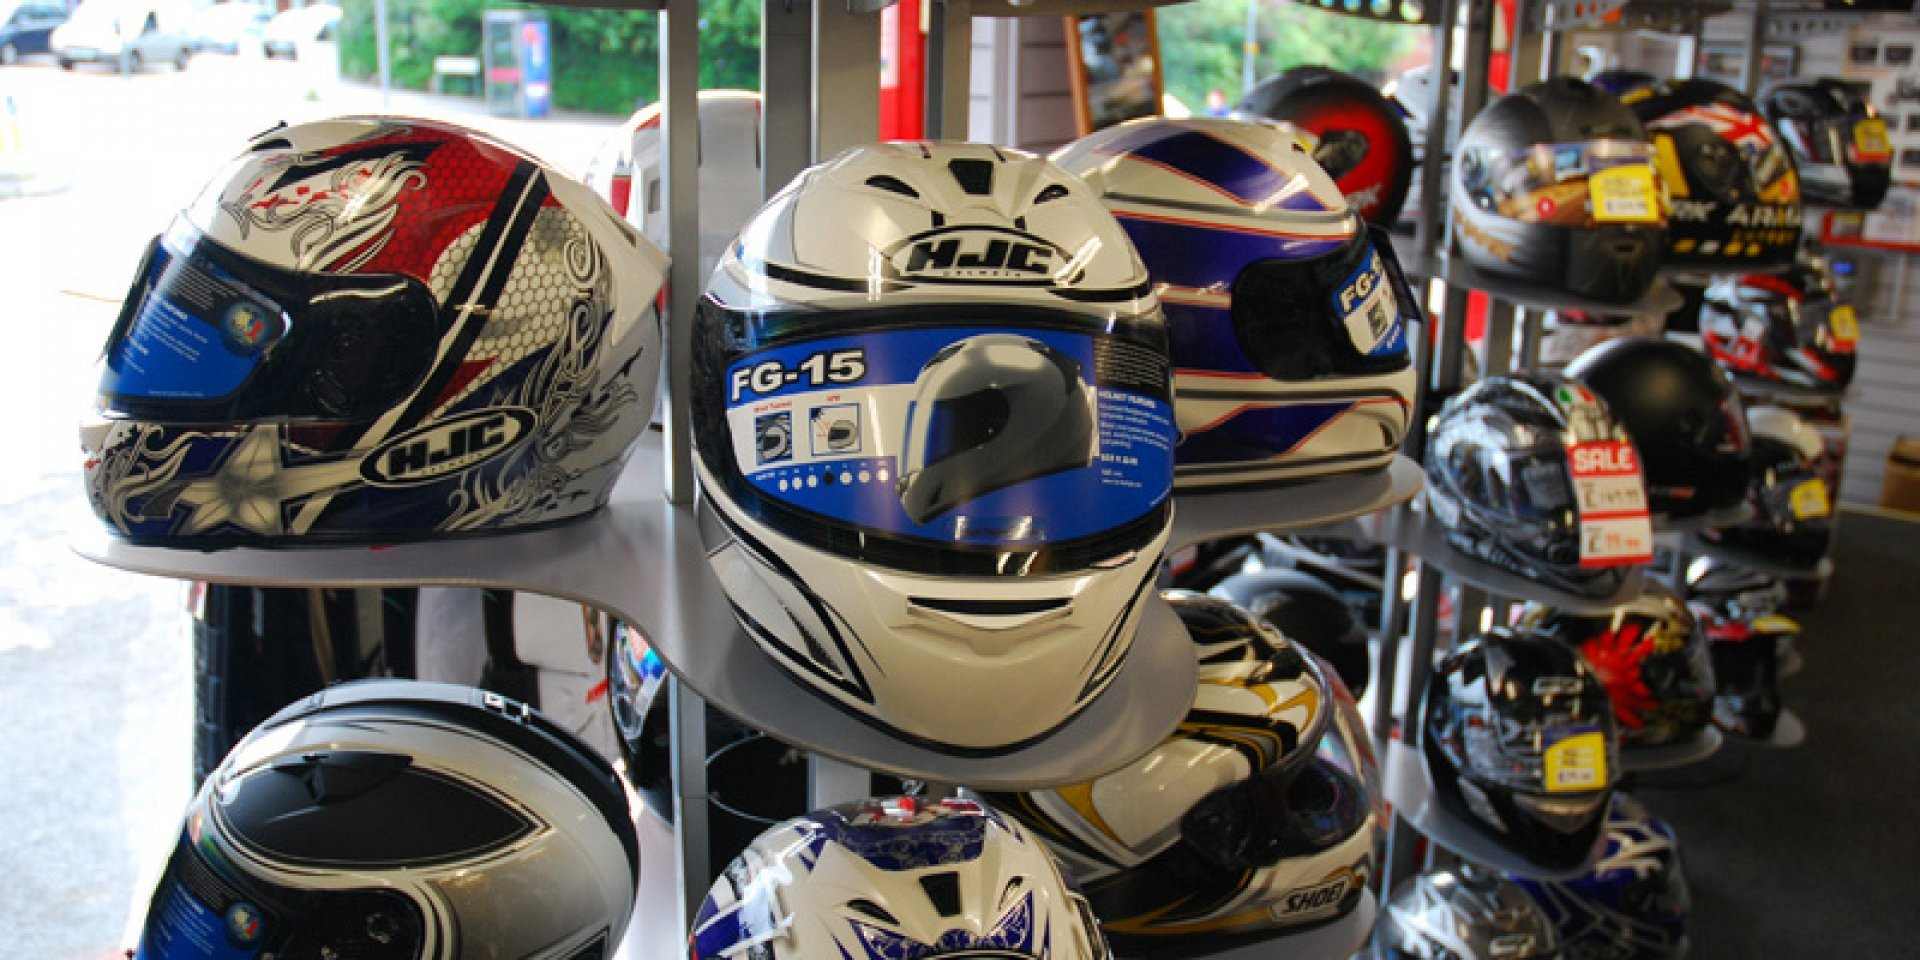 Motorcycle Helmet Shop